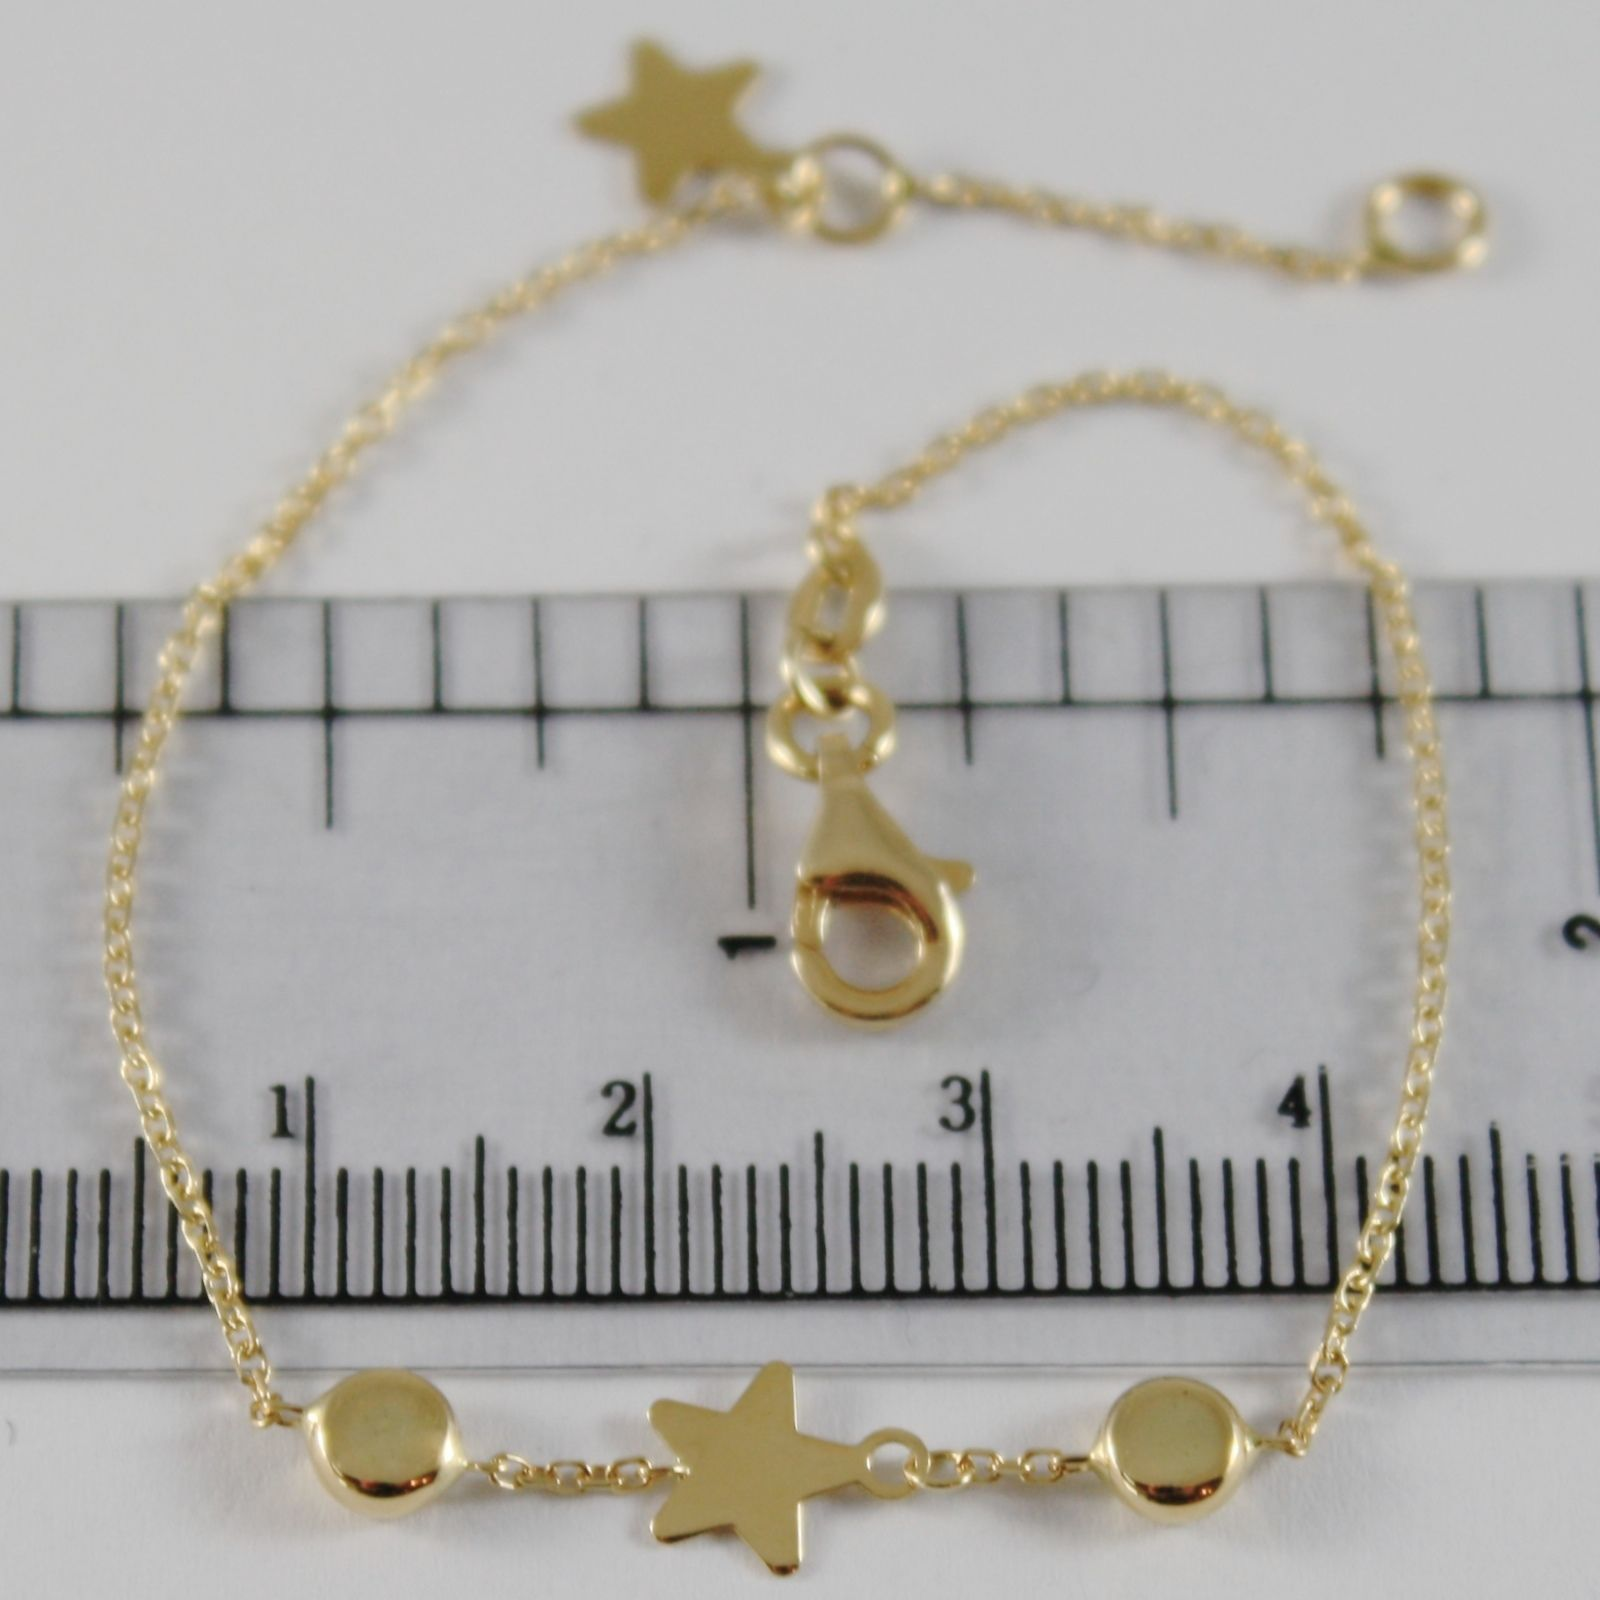 18K YELLOW GOLD GIRL BRACELET 6.70 INCHES WITH FLAT STAR AND DISC, MADE IN ITALY